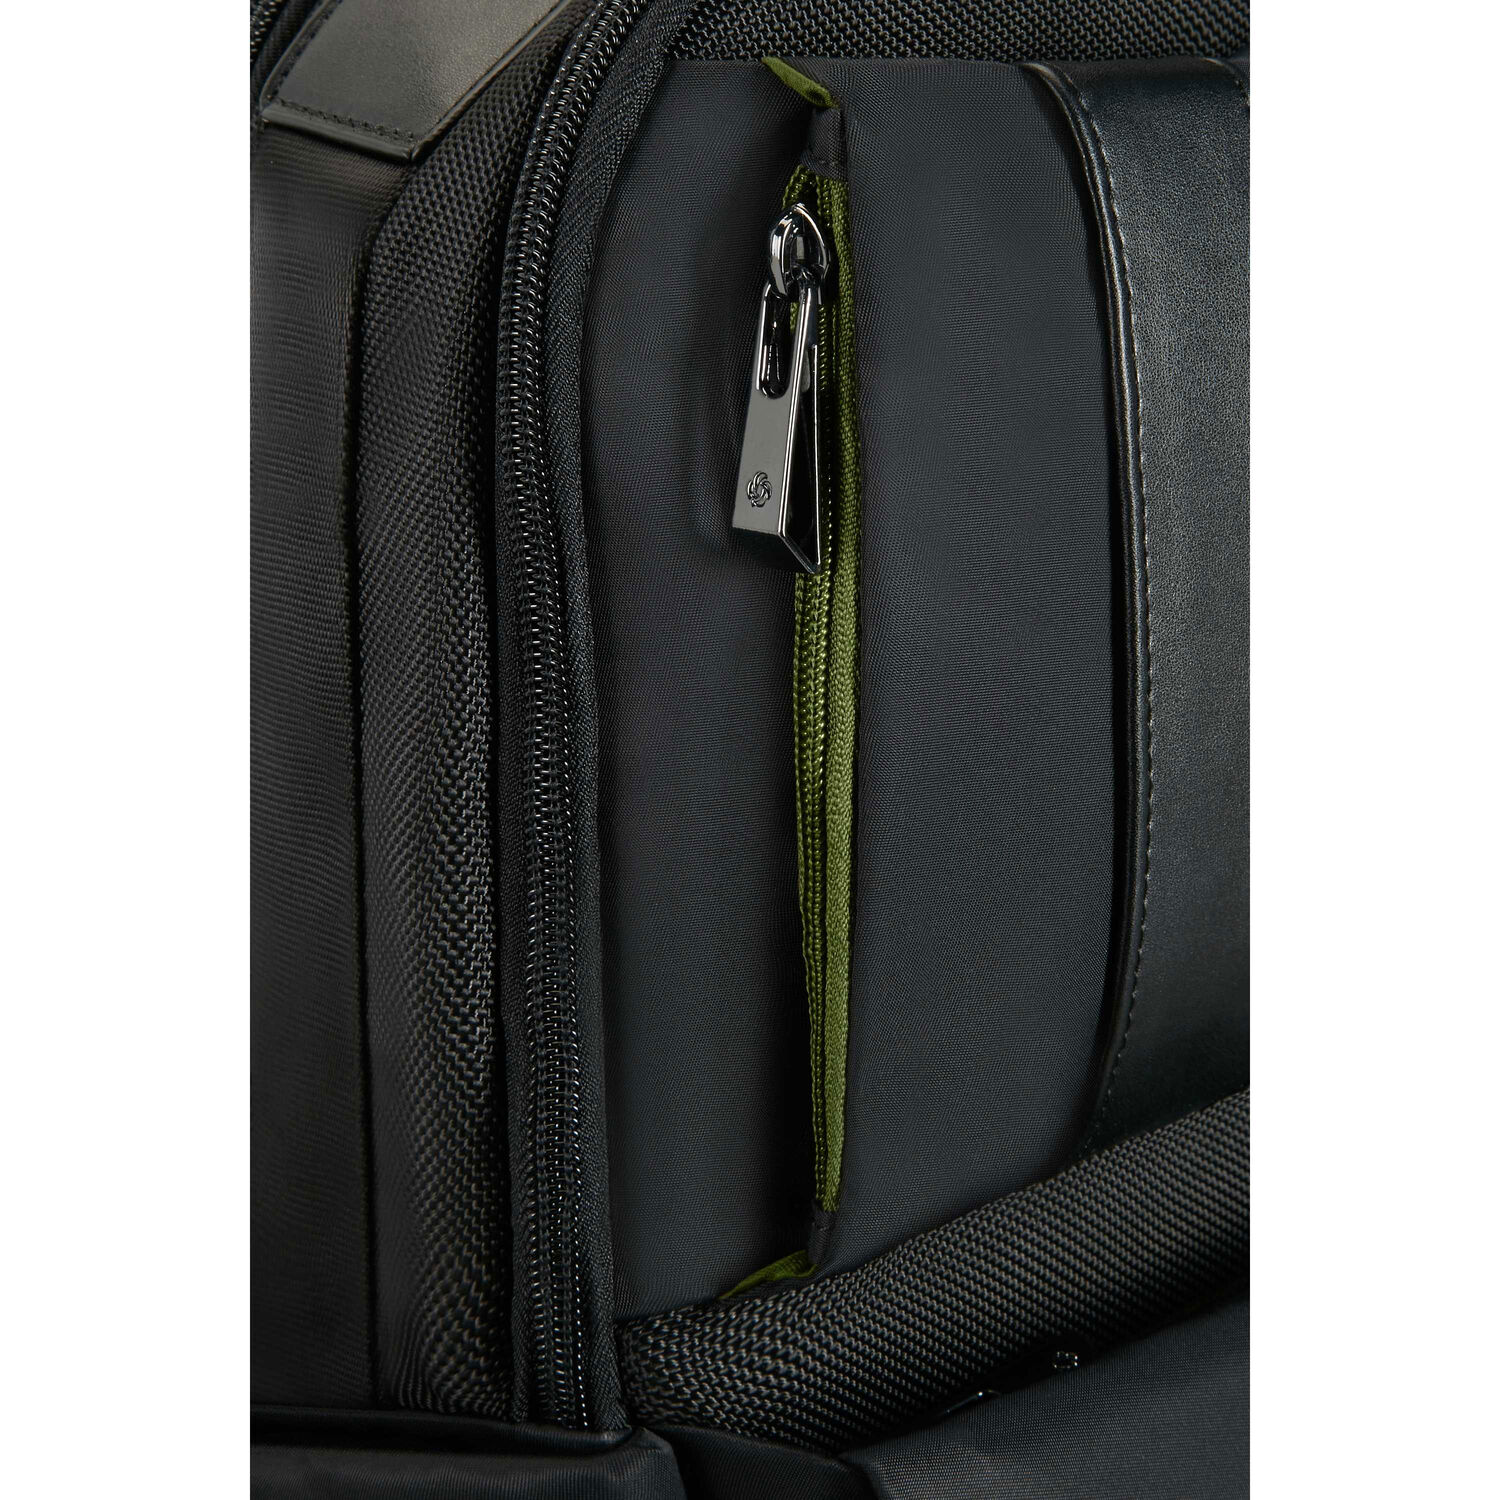 958e99483b27 Samsonite Openroad 15.6 quot  Laptop Backpack in the color Jet ...